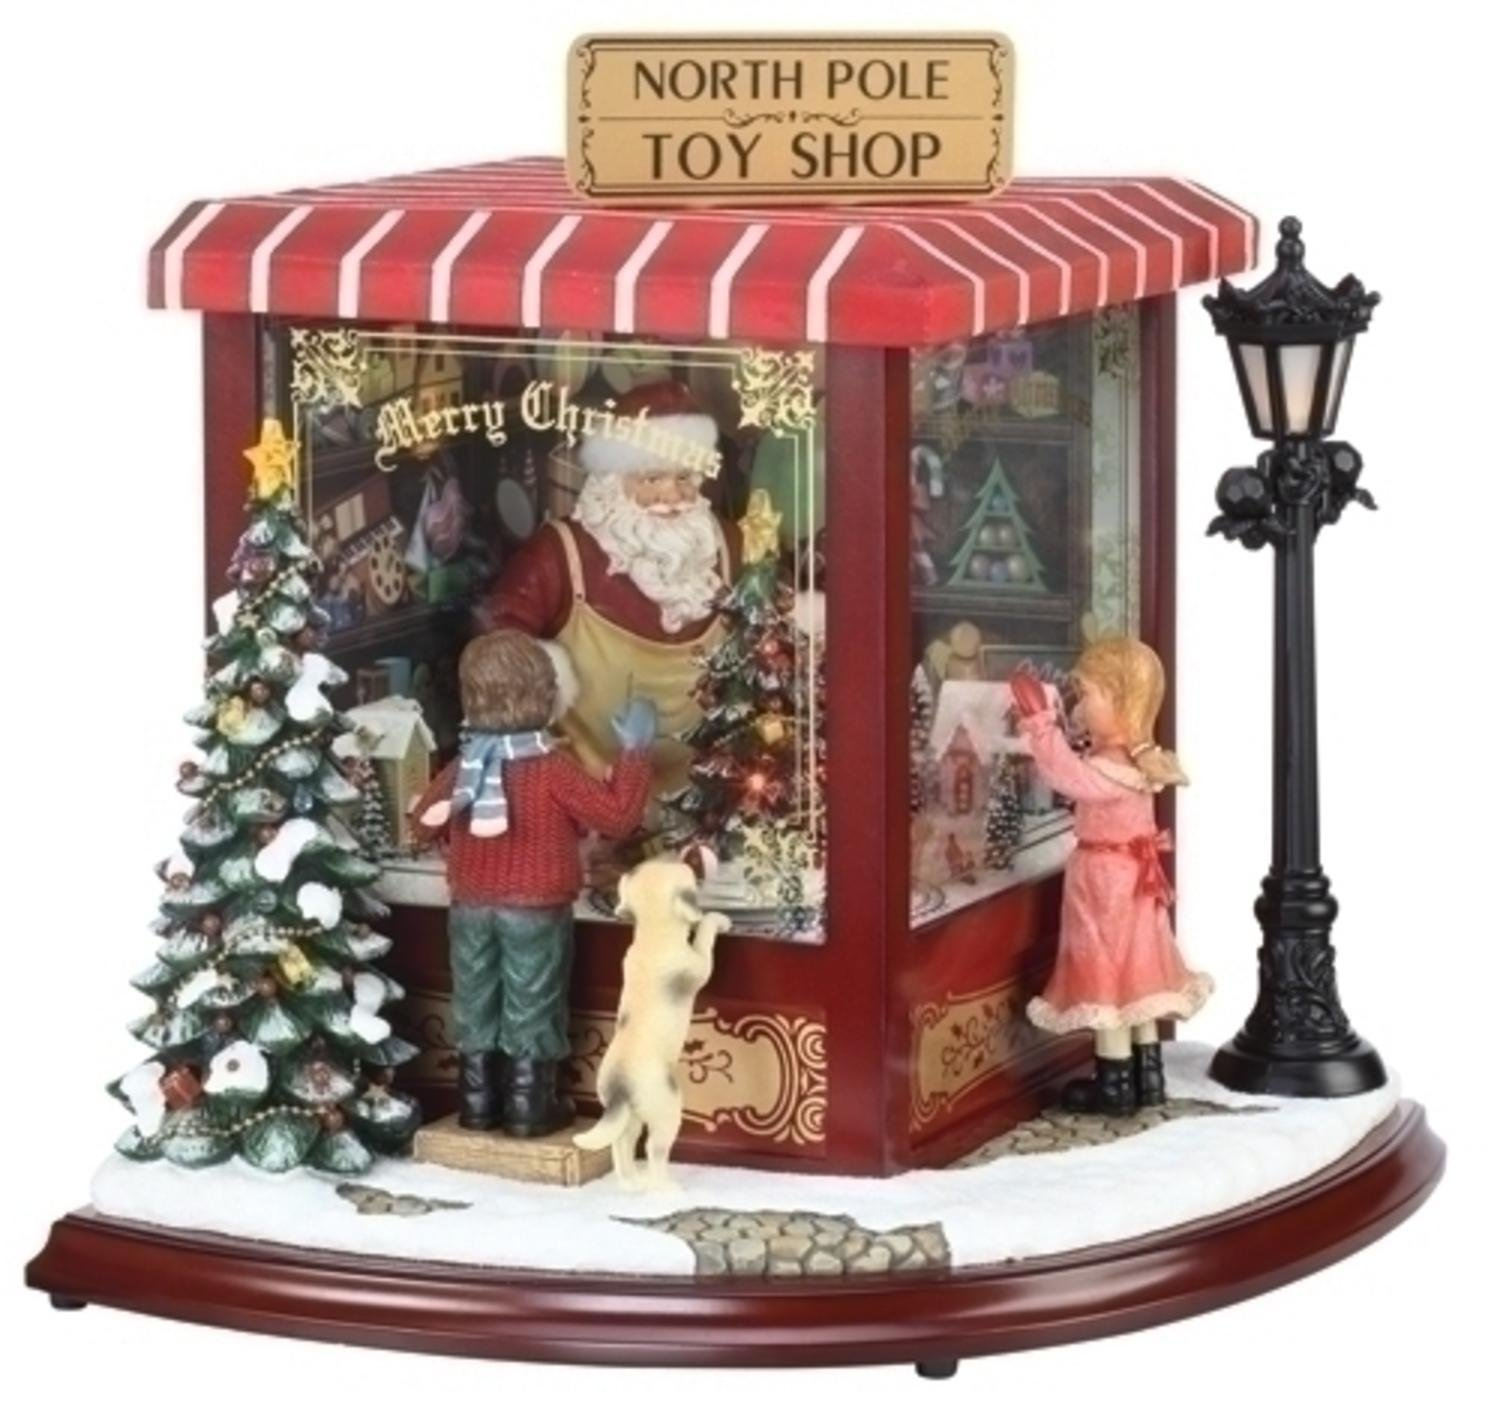 Roman Amusements LED Lighted Animated & Musical North Pole Toy Shop Christmas Decor